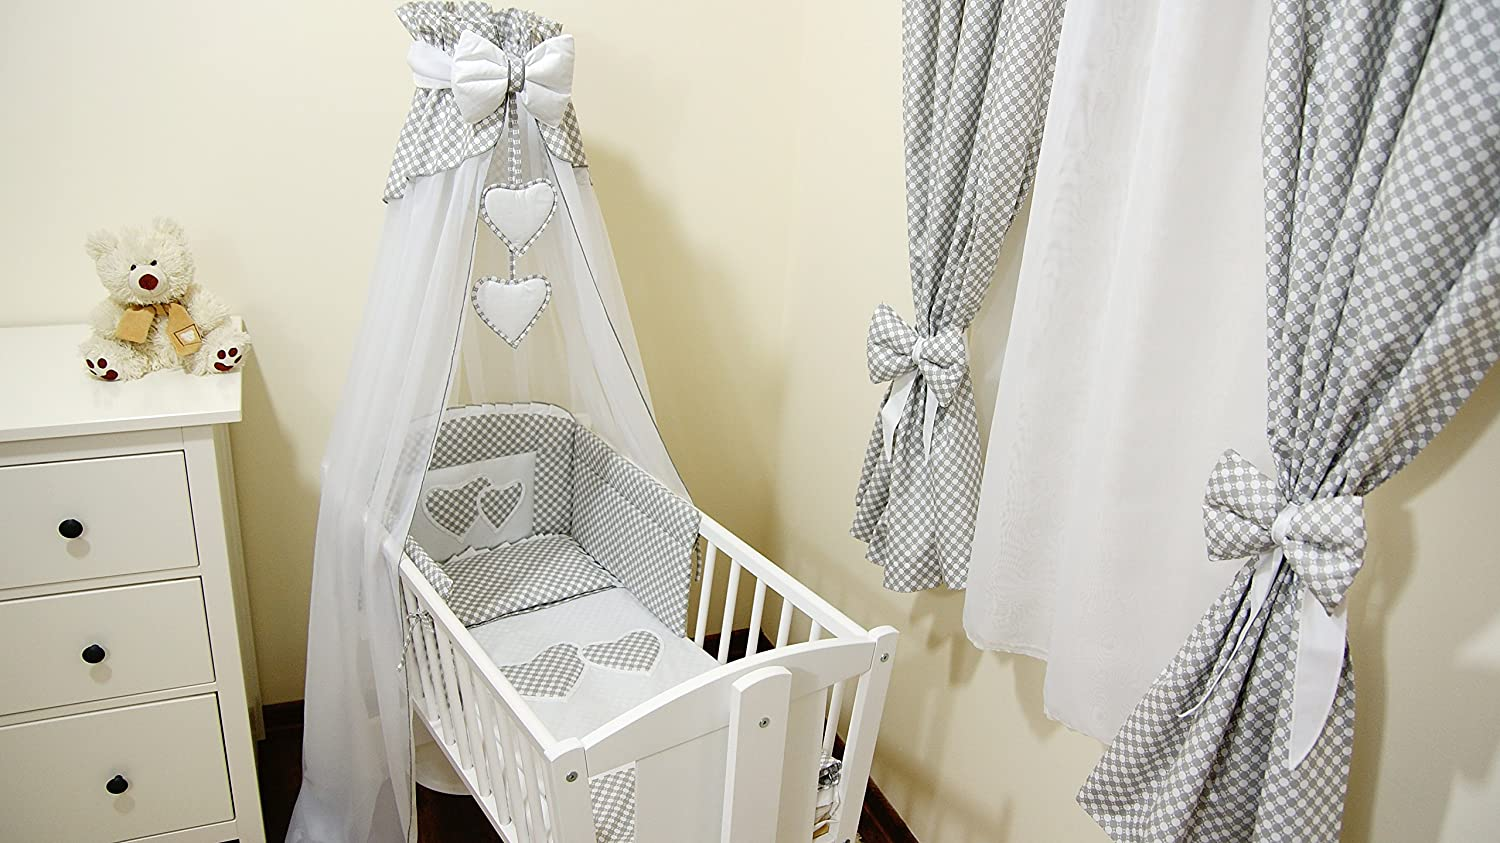 10p BabyBeddingSet //Bumper//Canopy //Holder//Quilt//CANOPY for Cot Bed or Cot GREY